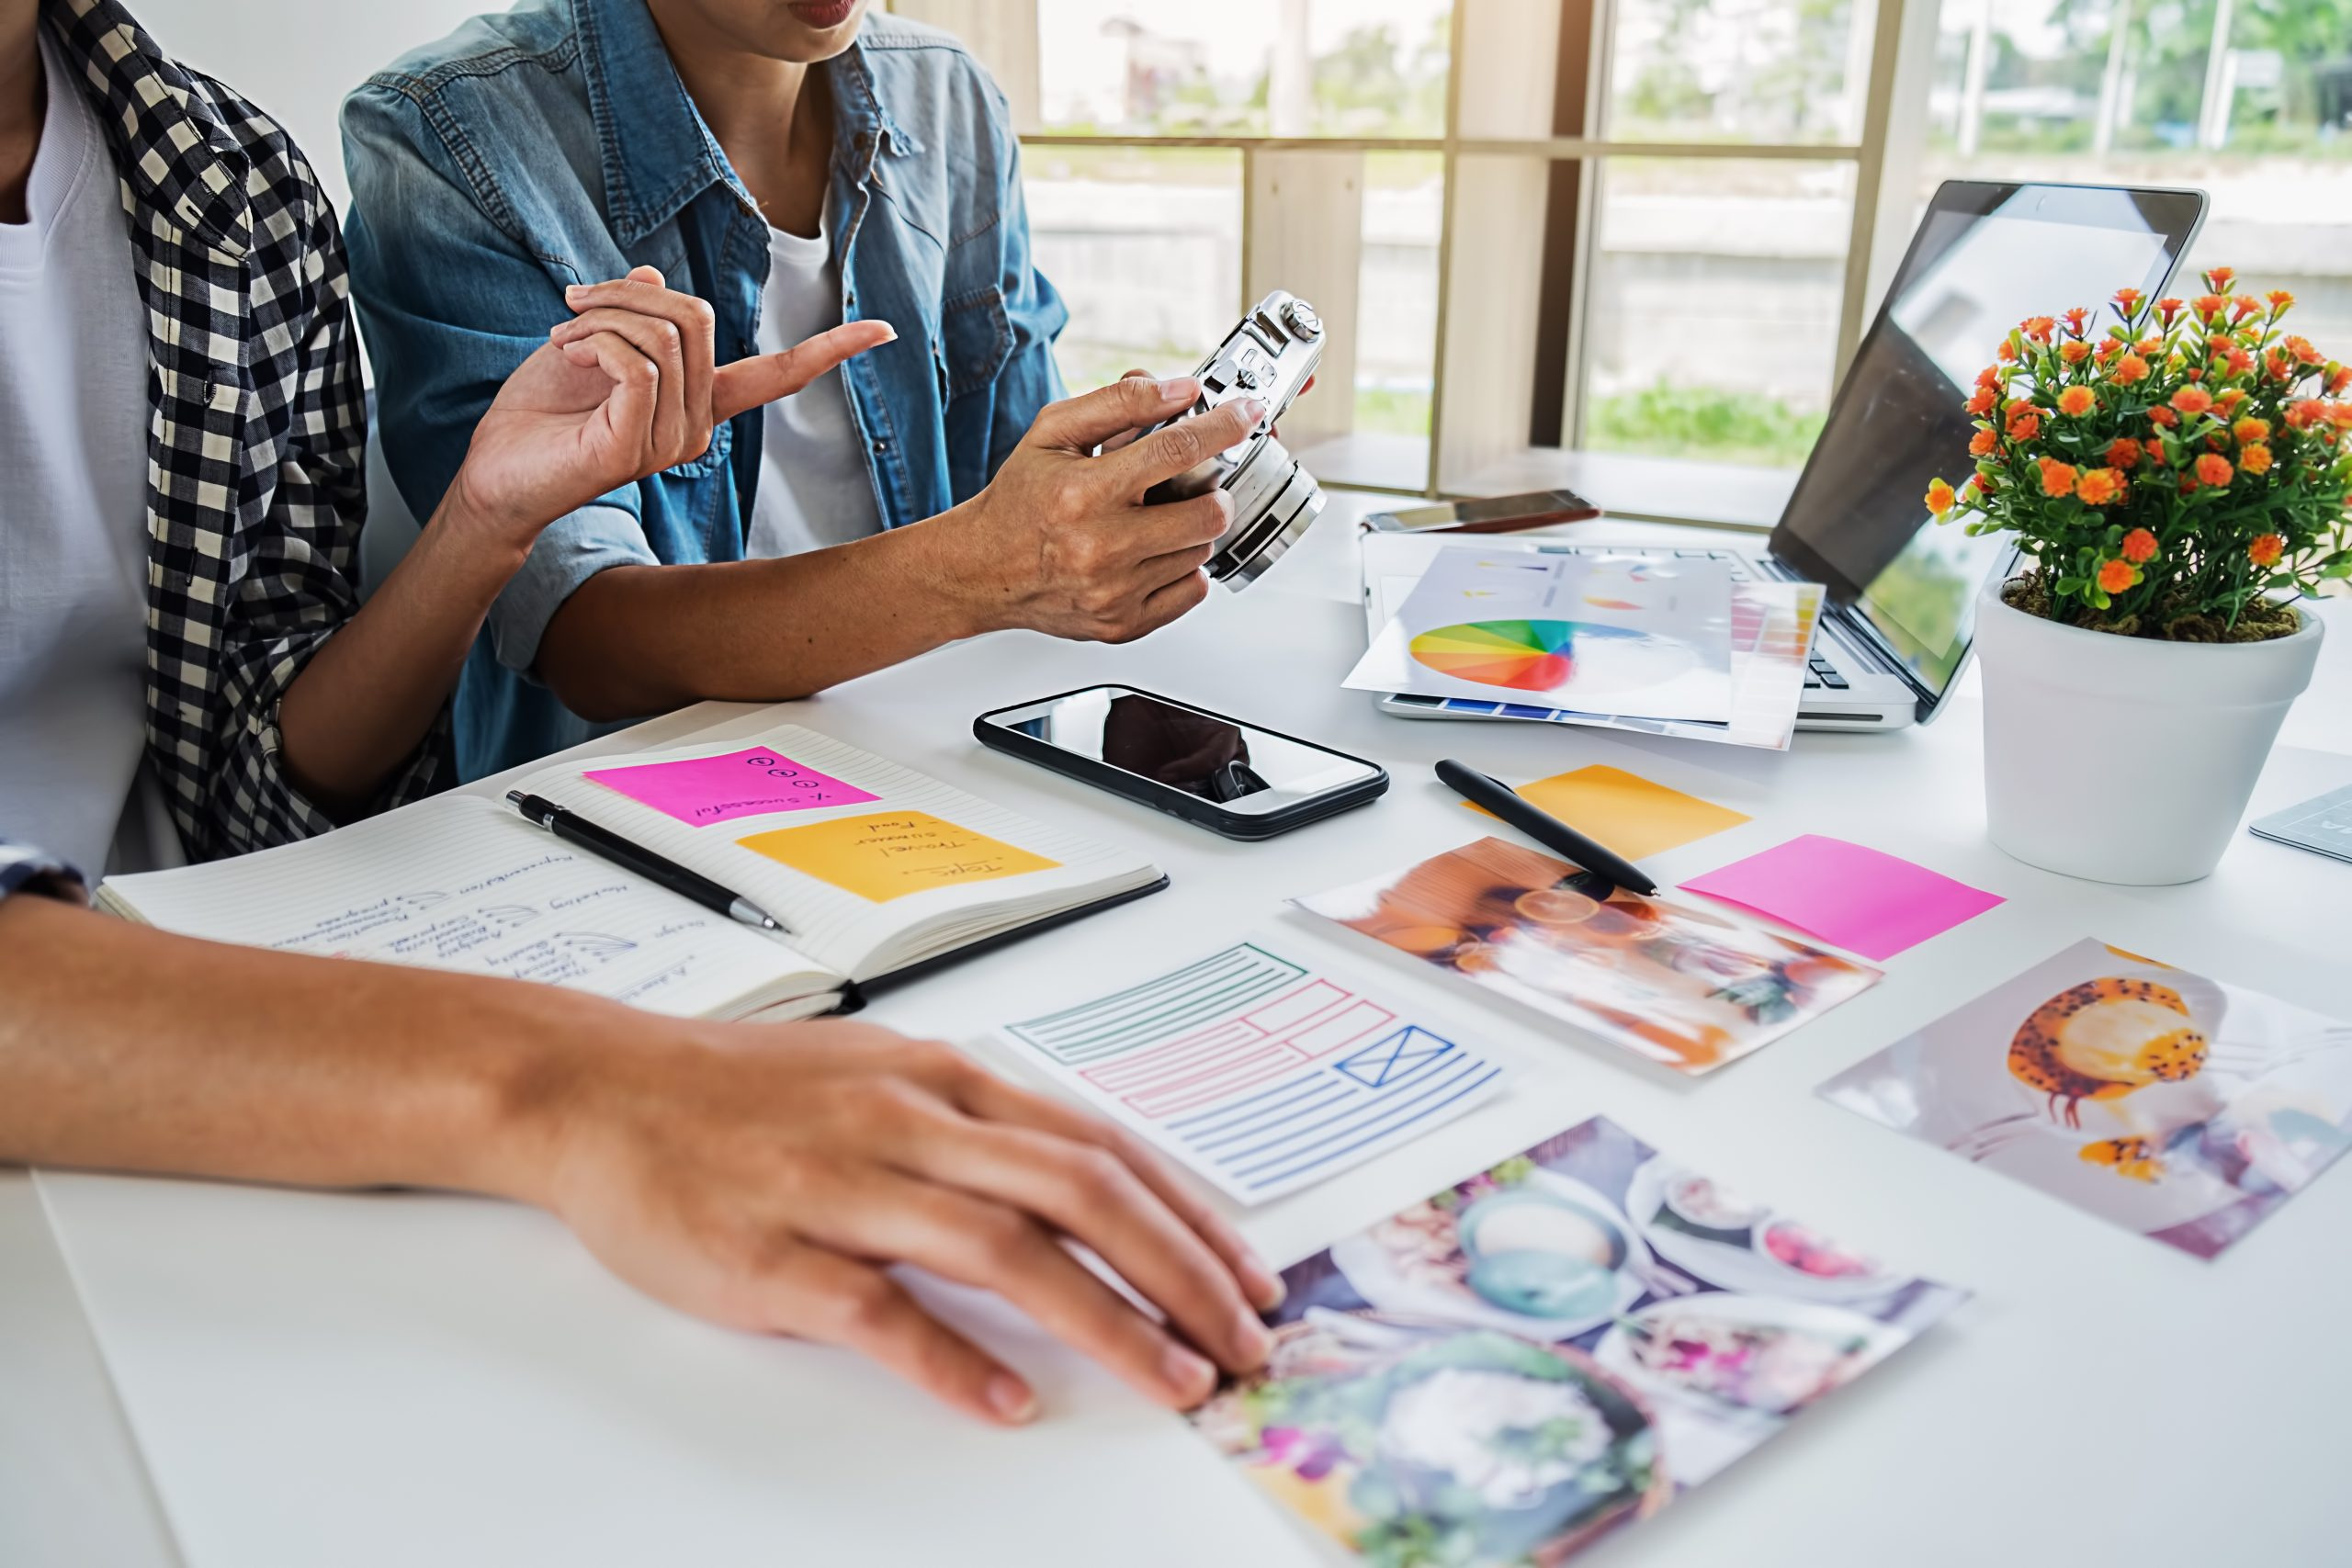 Brand Identity 101: How Will You Shape Your Customer's View?